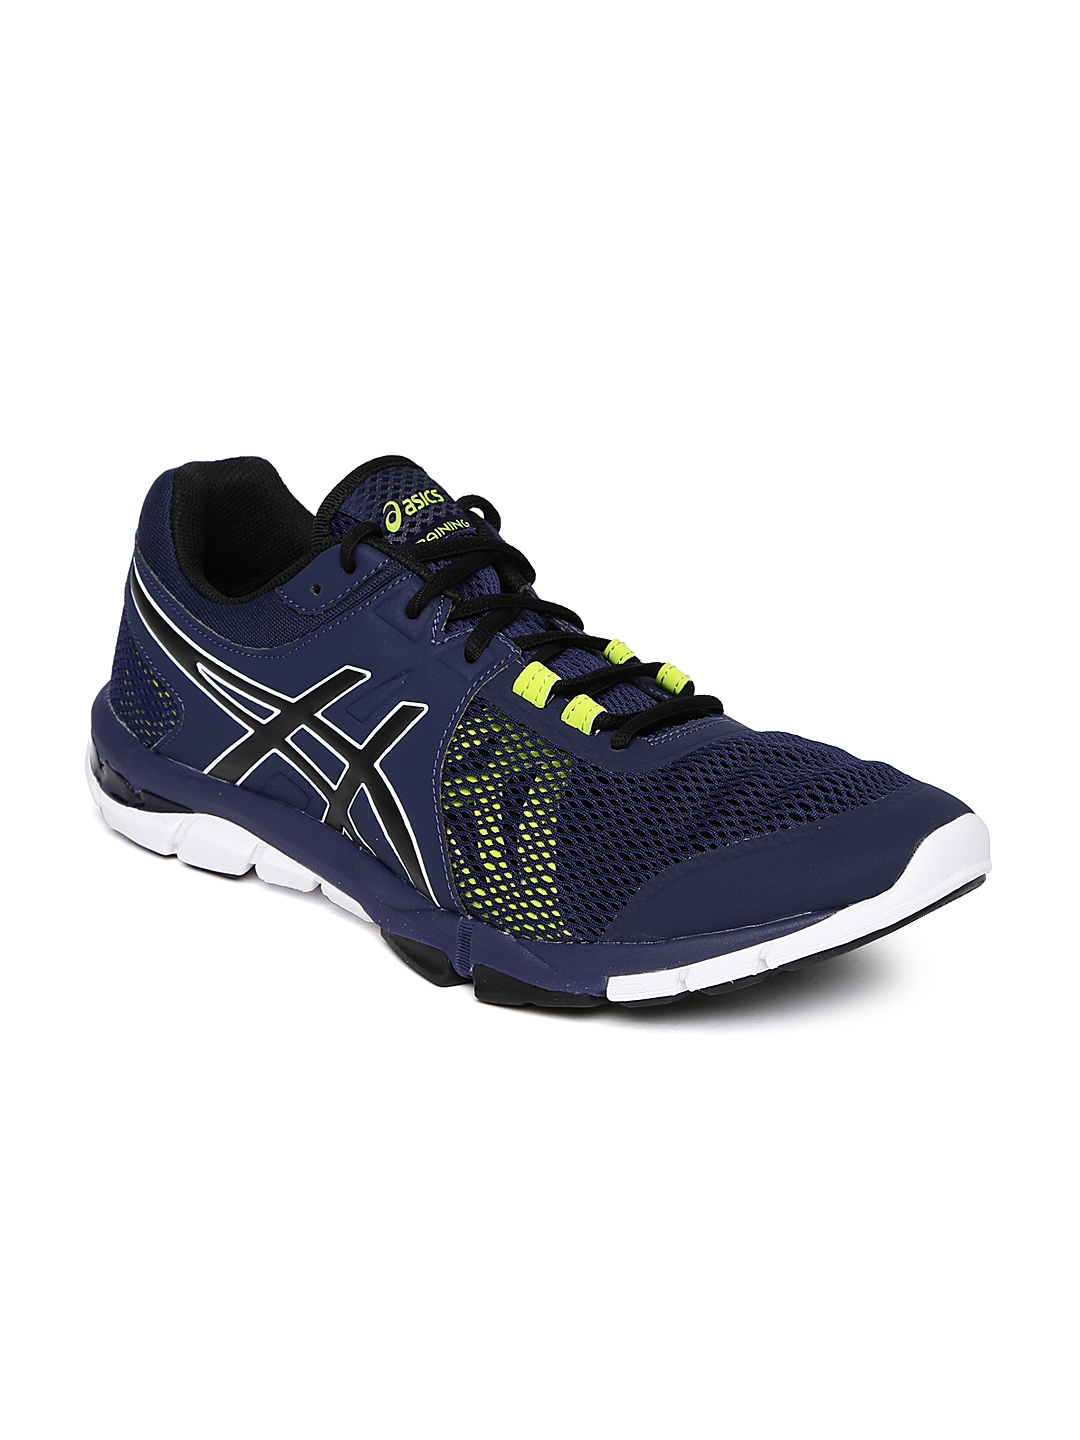 cee1aaf00905 Buy ASICS Men Navy Blue GEL CRAZE TR 4 Training Shoes - Sports Shoes ...